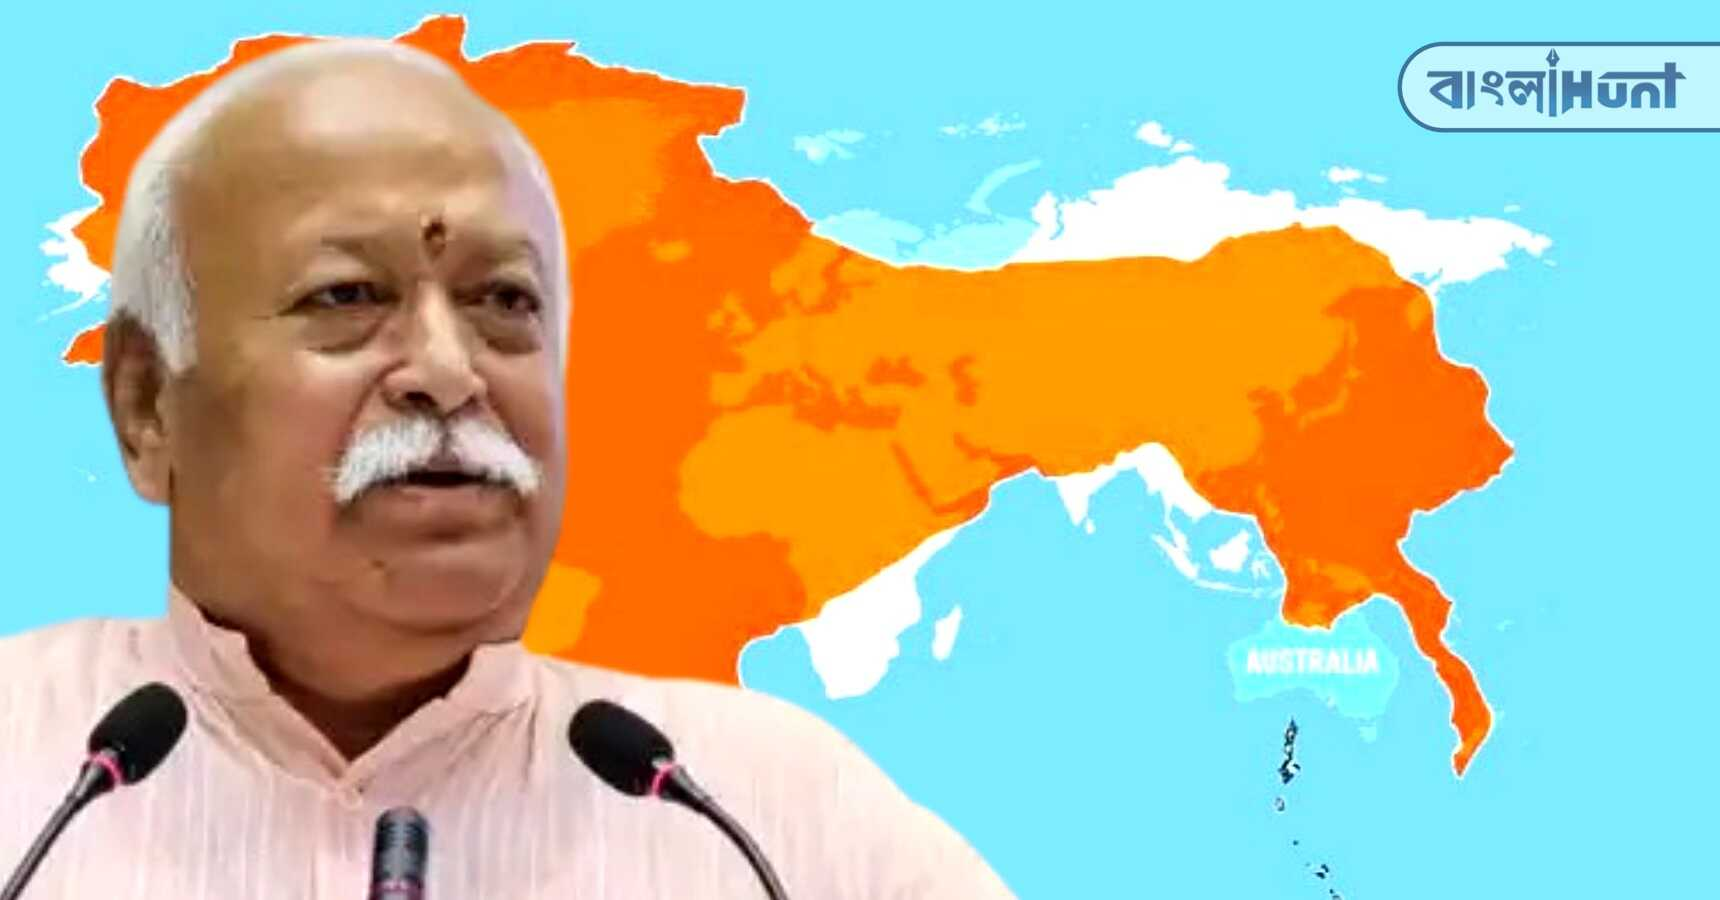 'Unified India will be built again', Mohan Bhagwat's demand